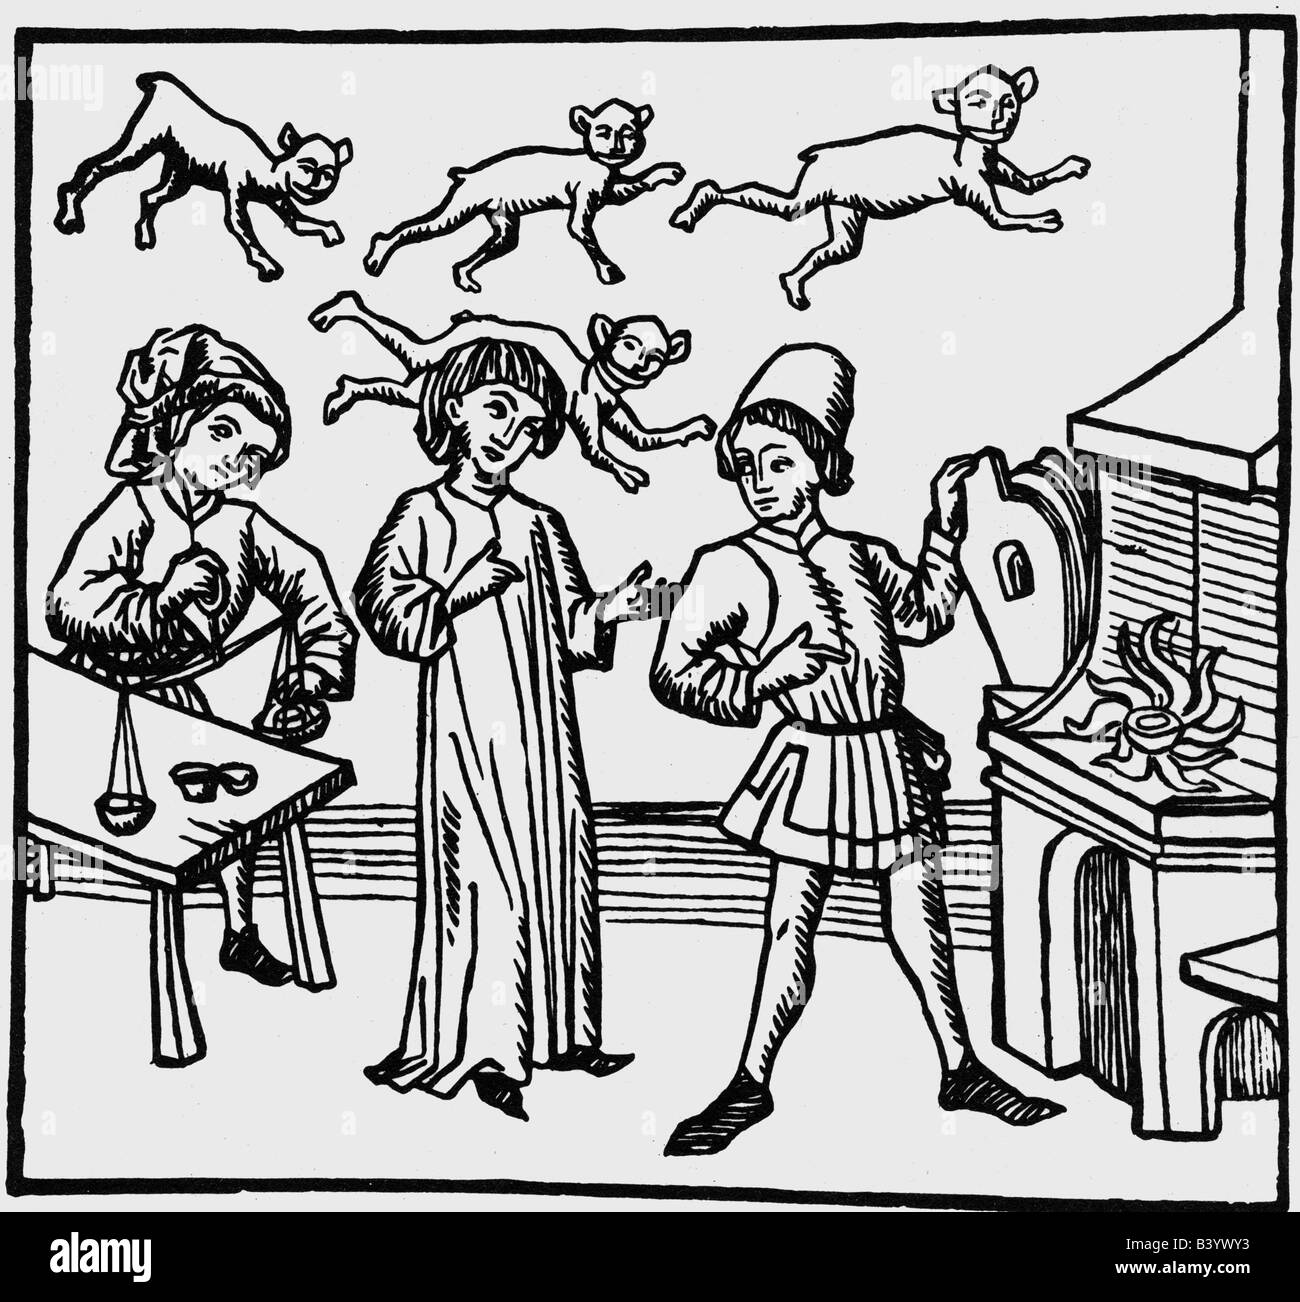 alchemy, laboratories, woodcut, early 16th century, alchemist, laboratory, oven, bellow, historic, historical, people, - Stock Image